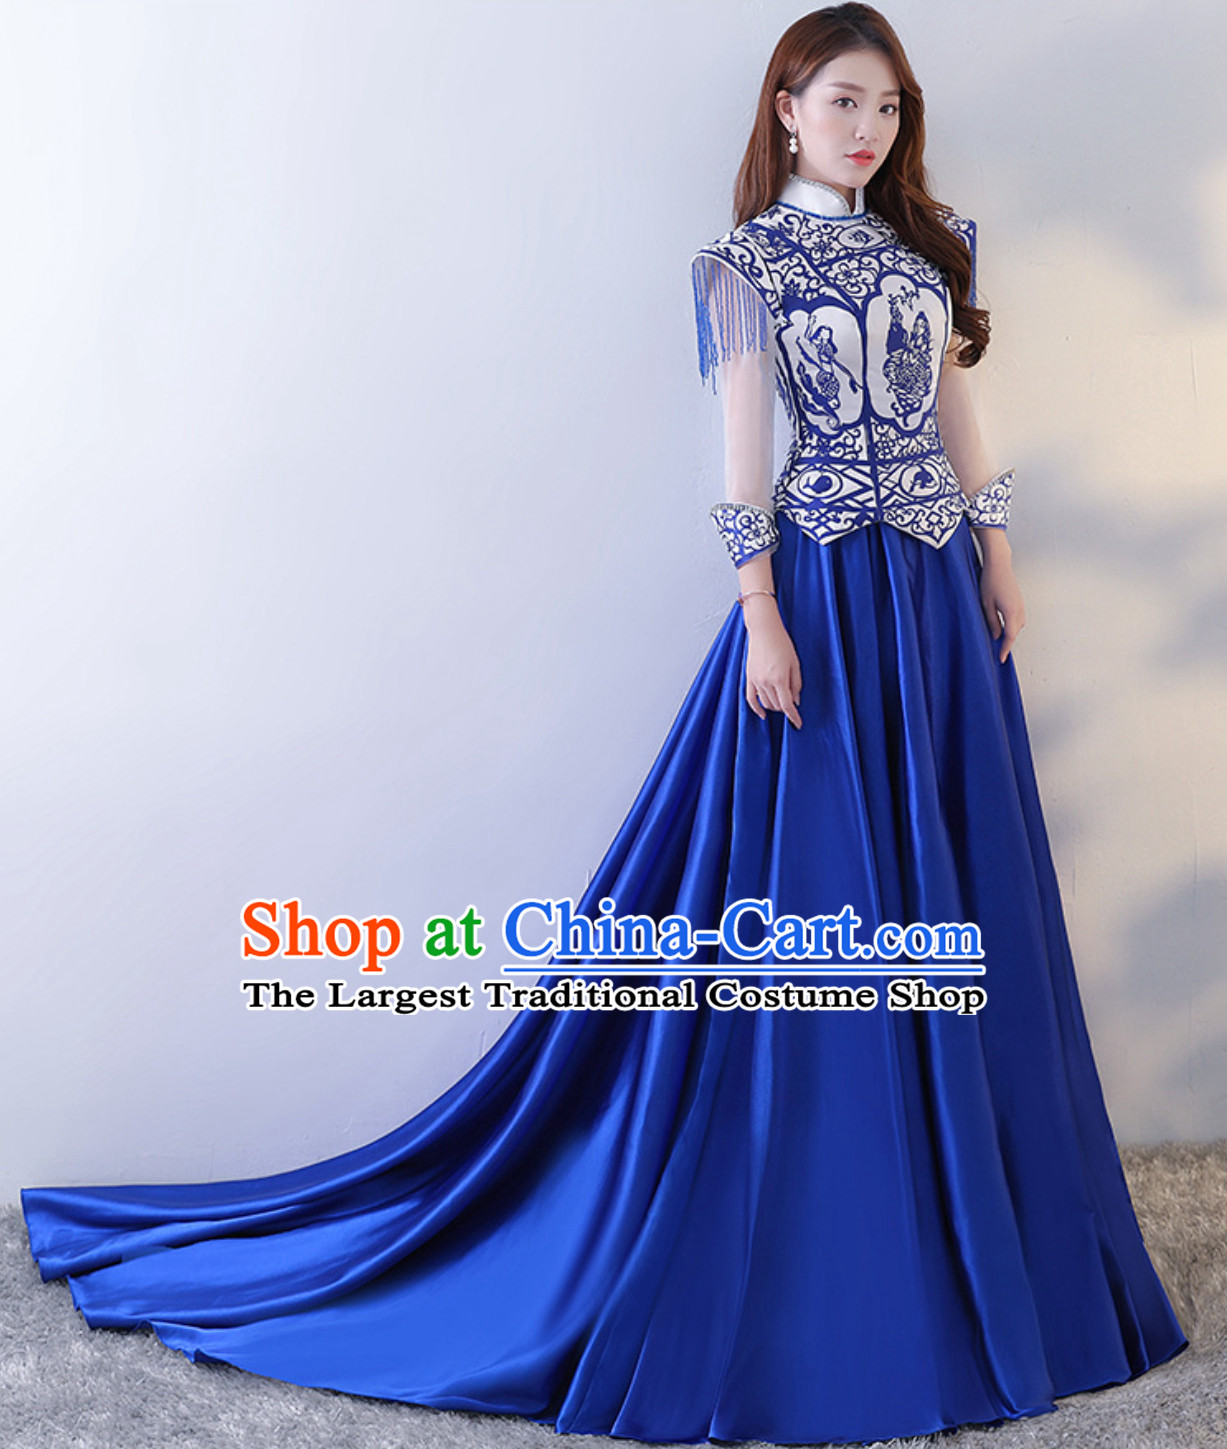 Blue White Royal Beautiful Big Event Evening Dress